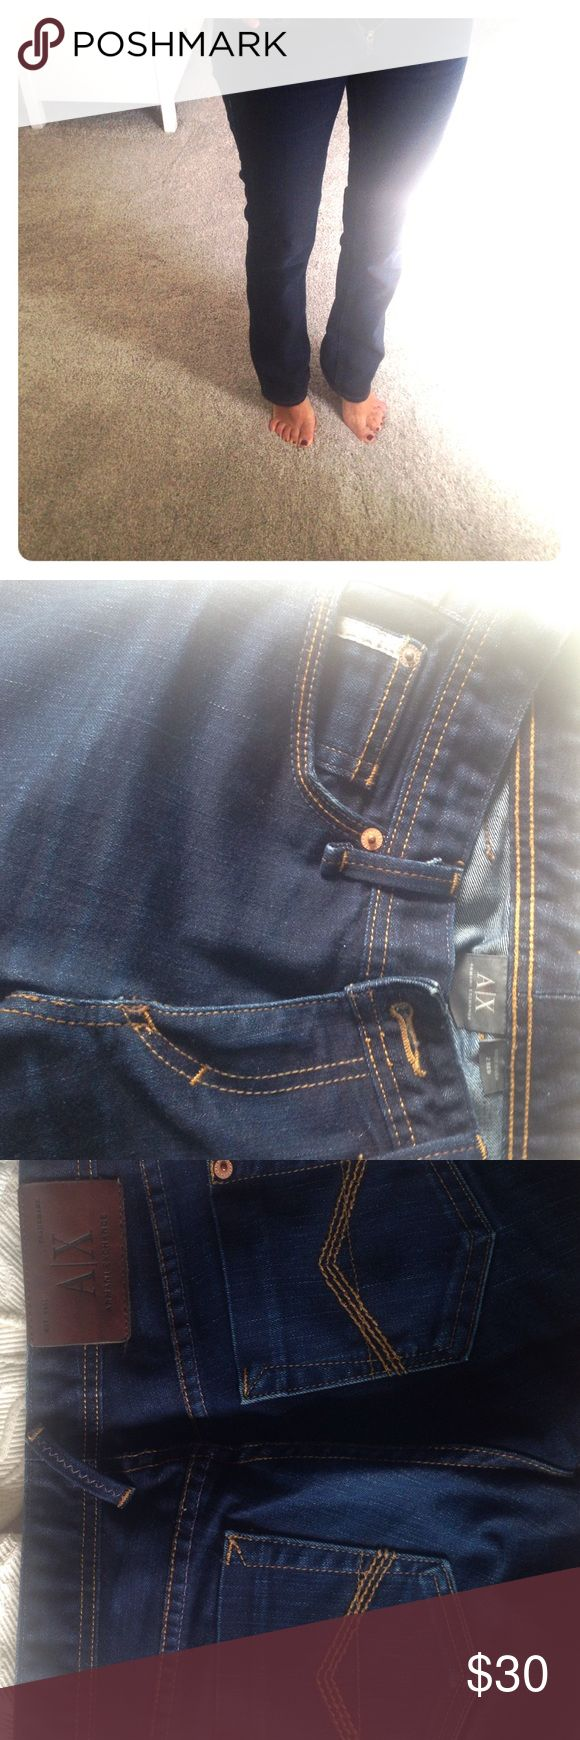 Armani Exchange Jeans Great color can go with any outfit. Barely worn as it was too long for me. In great shape Armani Exchange Jeans Straight Leg